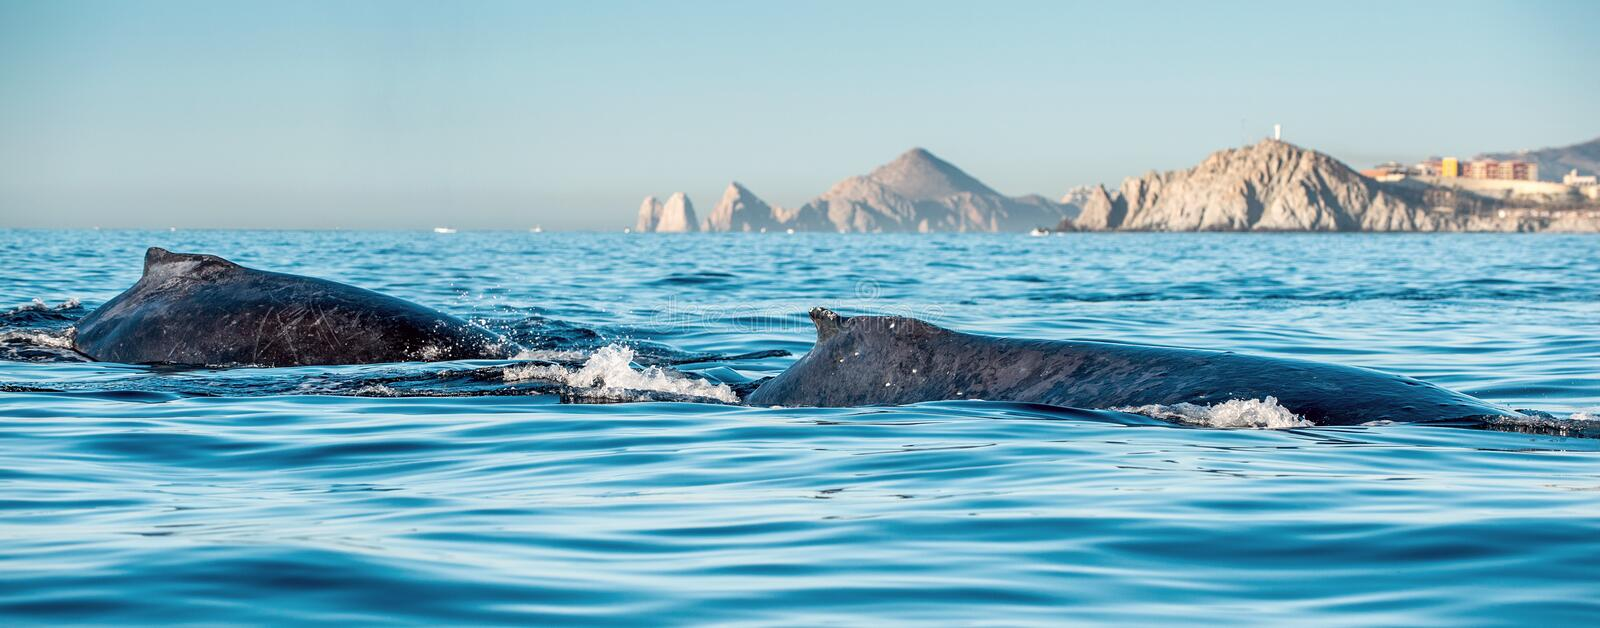 Whale back and dorsal fin. Humpback whale in the Pacific Ocean stock image